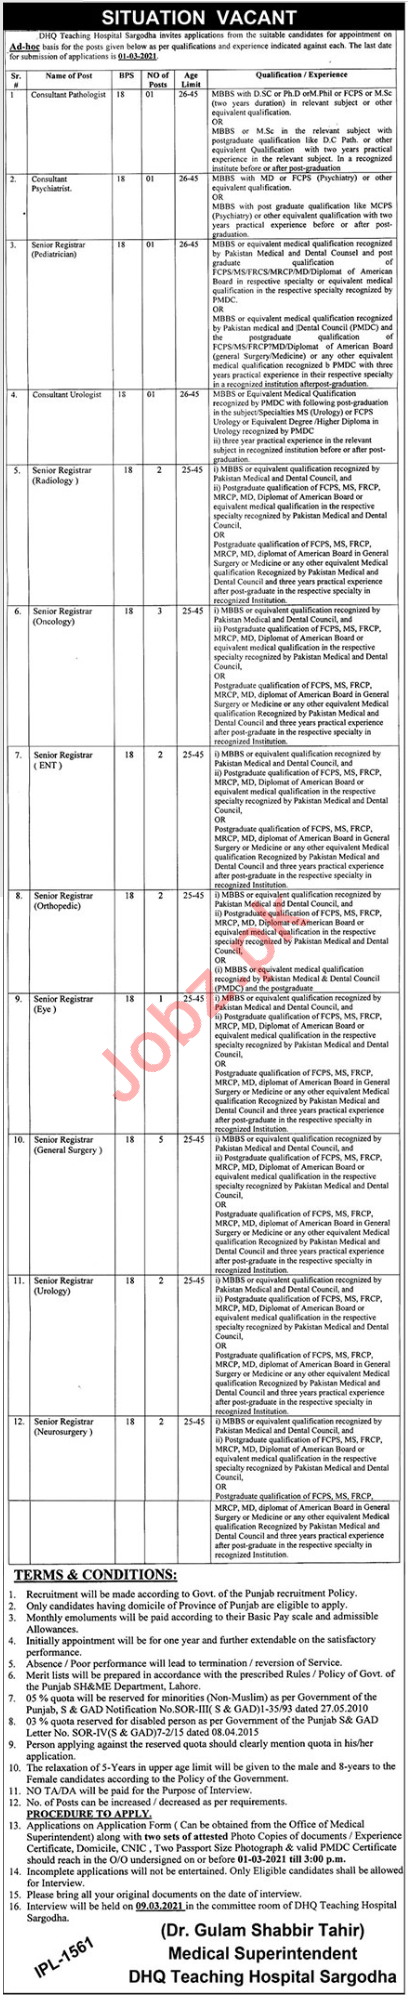 DHQ Teaching Hospital Sargodha Jobs 2021 for Consultants